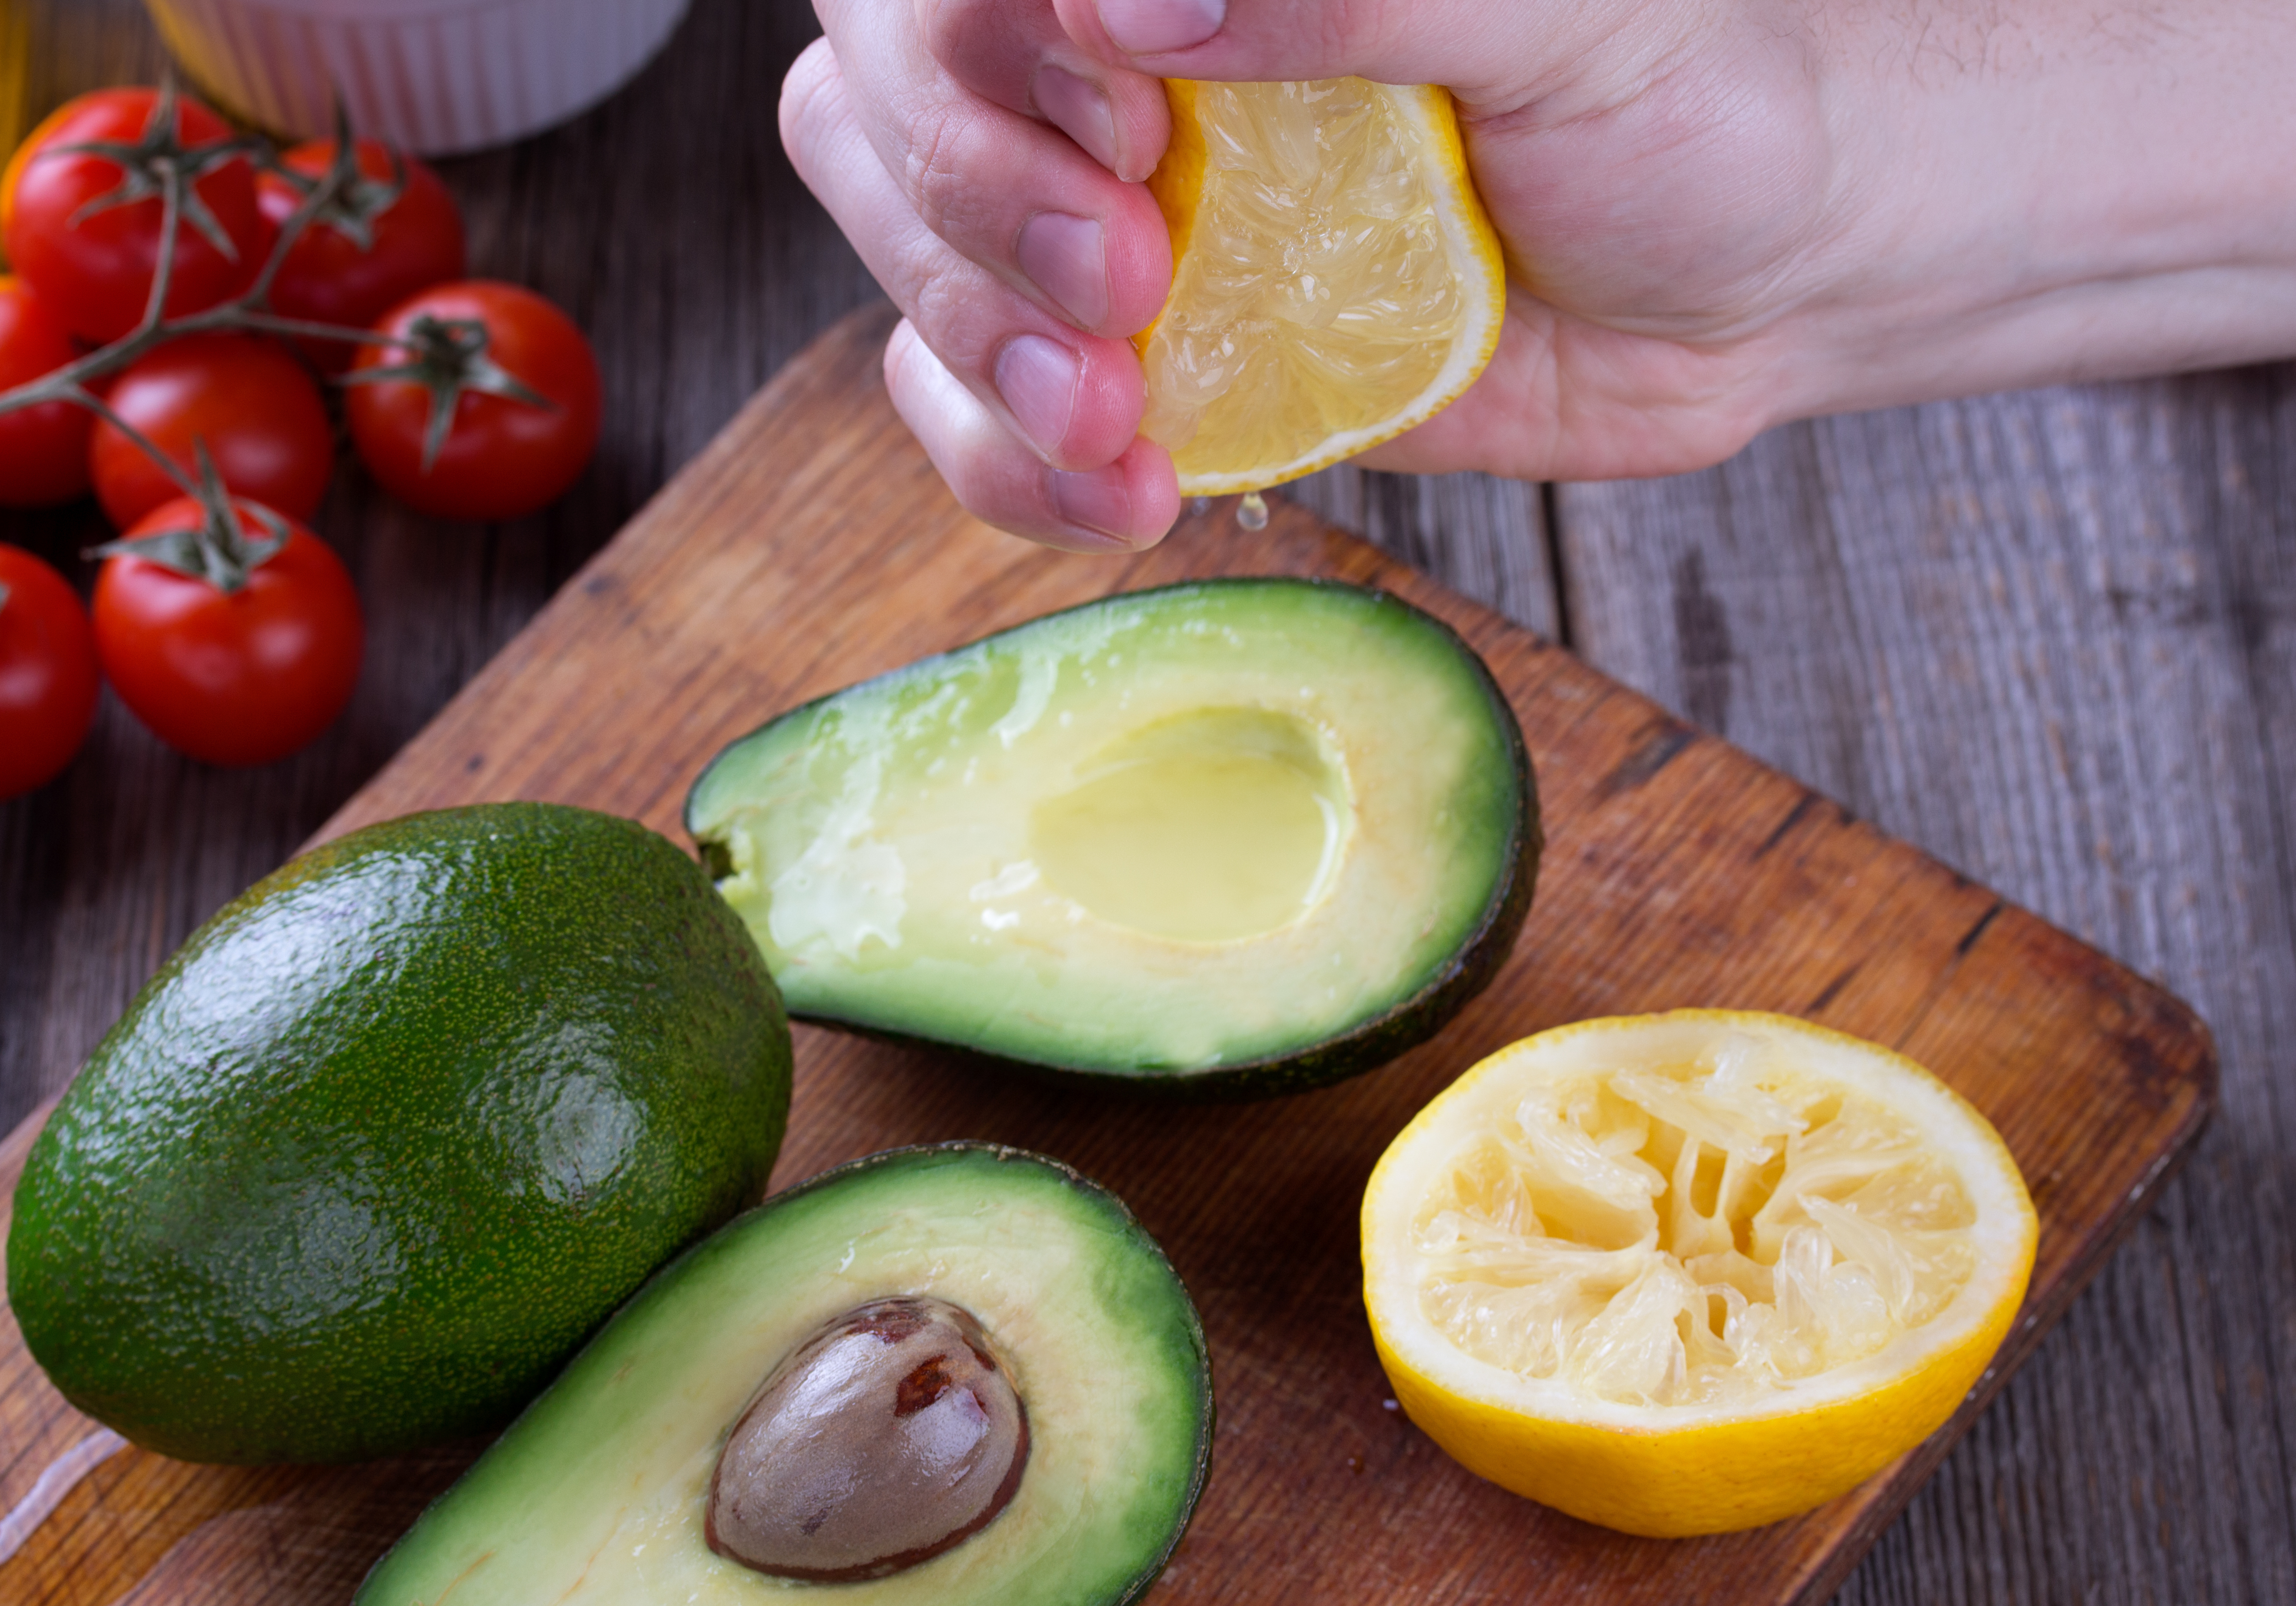 Someone using a lemon to stop avocados from browning by squeezing on the juice